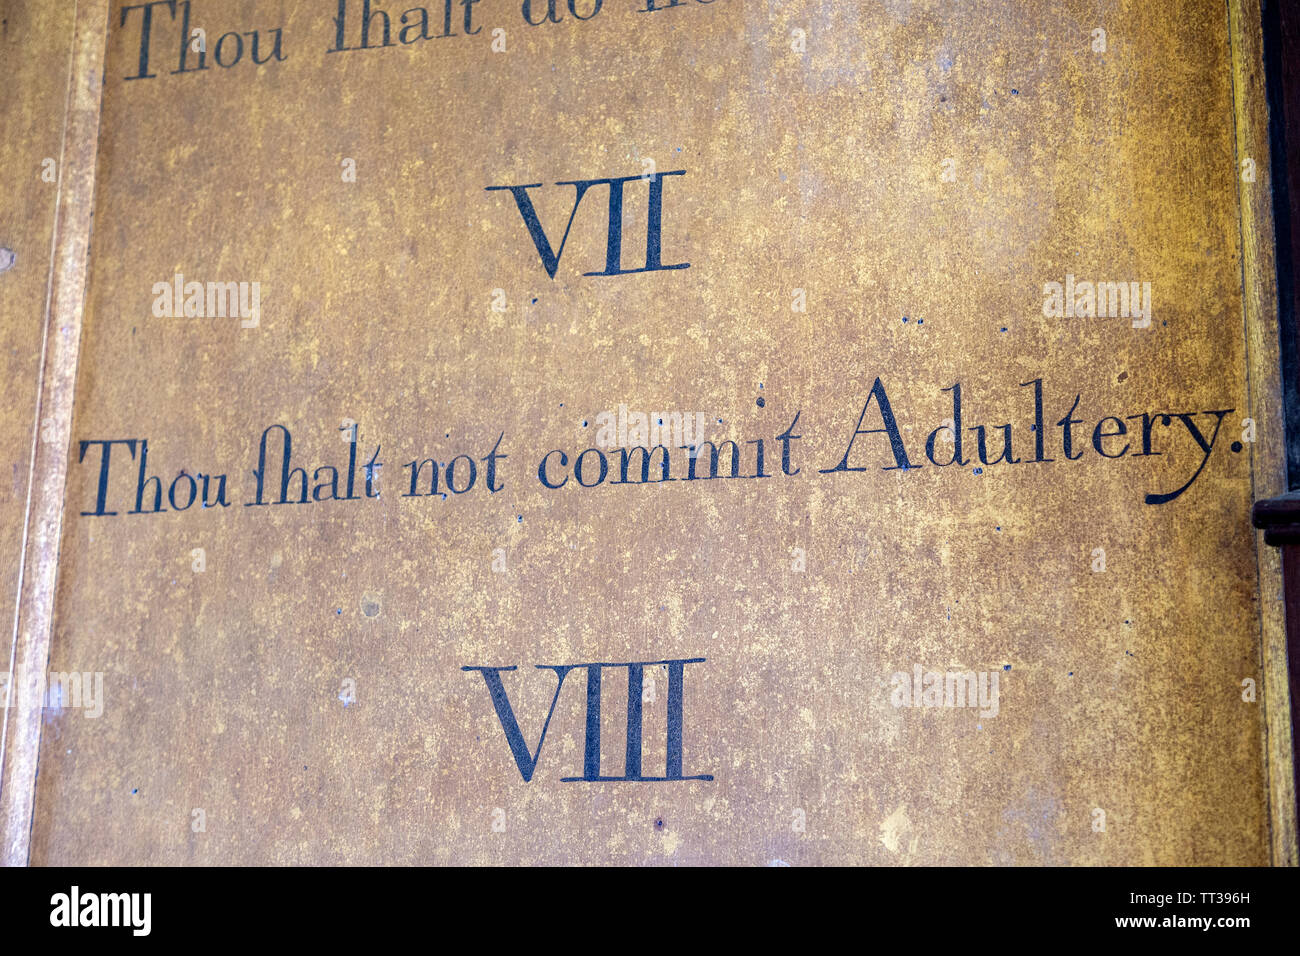 Historic interior of Saint John the Baptist church, Mildenhall, Wiltshire, England, UK 'Thou shalt not commit adultery' commandment - Stock Image